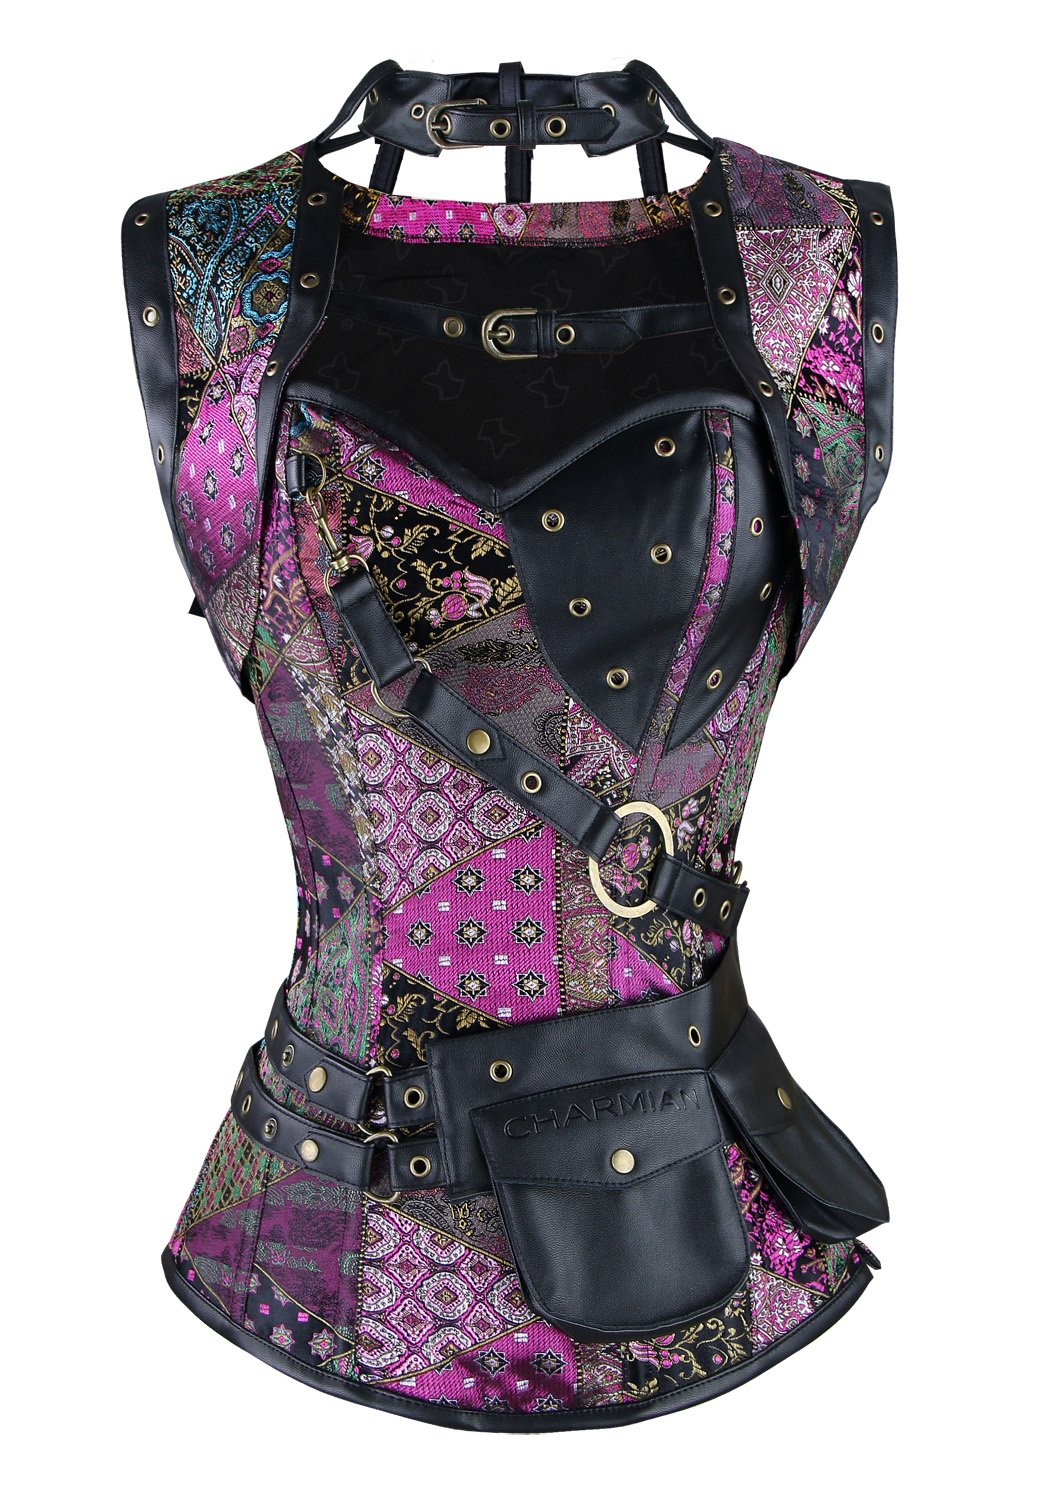 1681db7af8629 Charmian Women s Steampunk Spiral Steel Boned Vintage Retro Corset Tops  Bustier product image